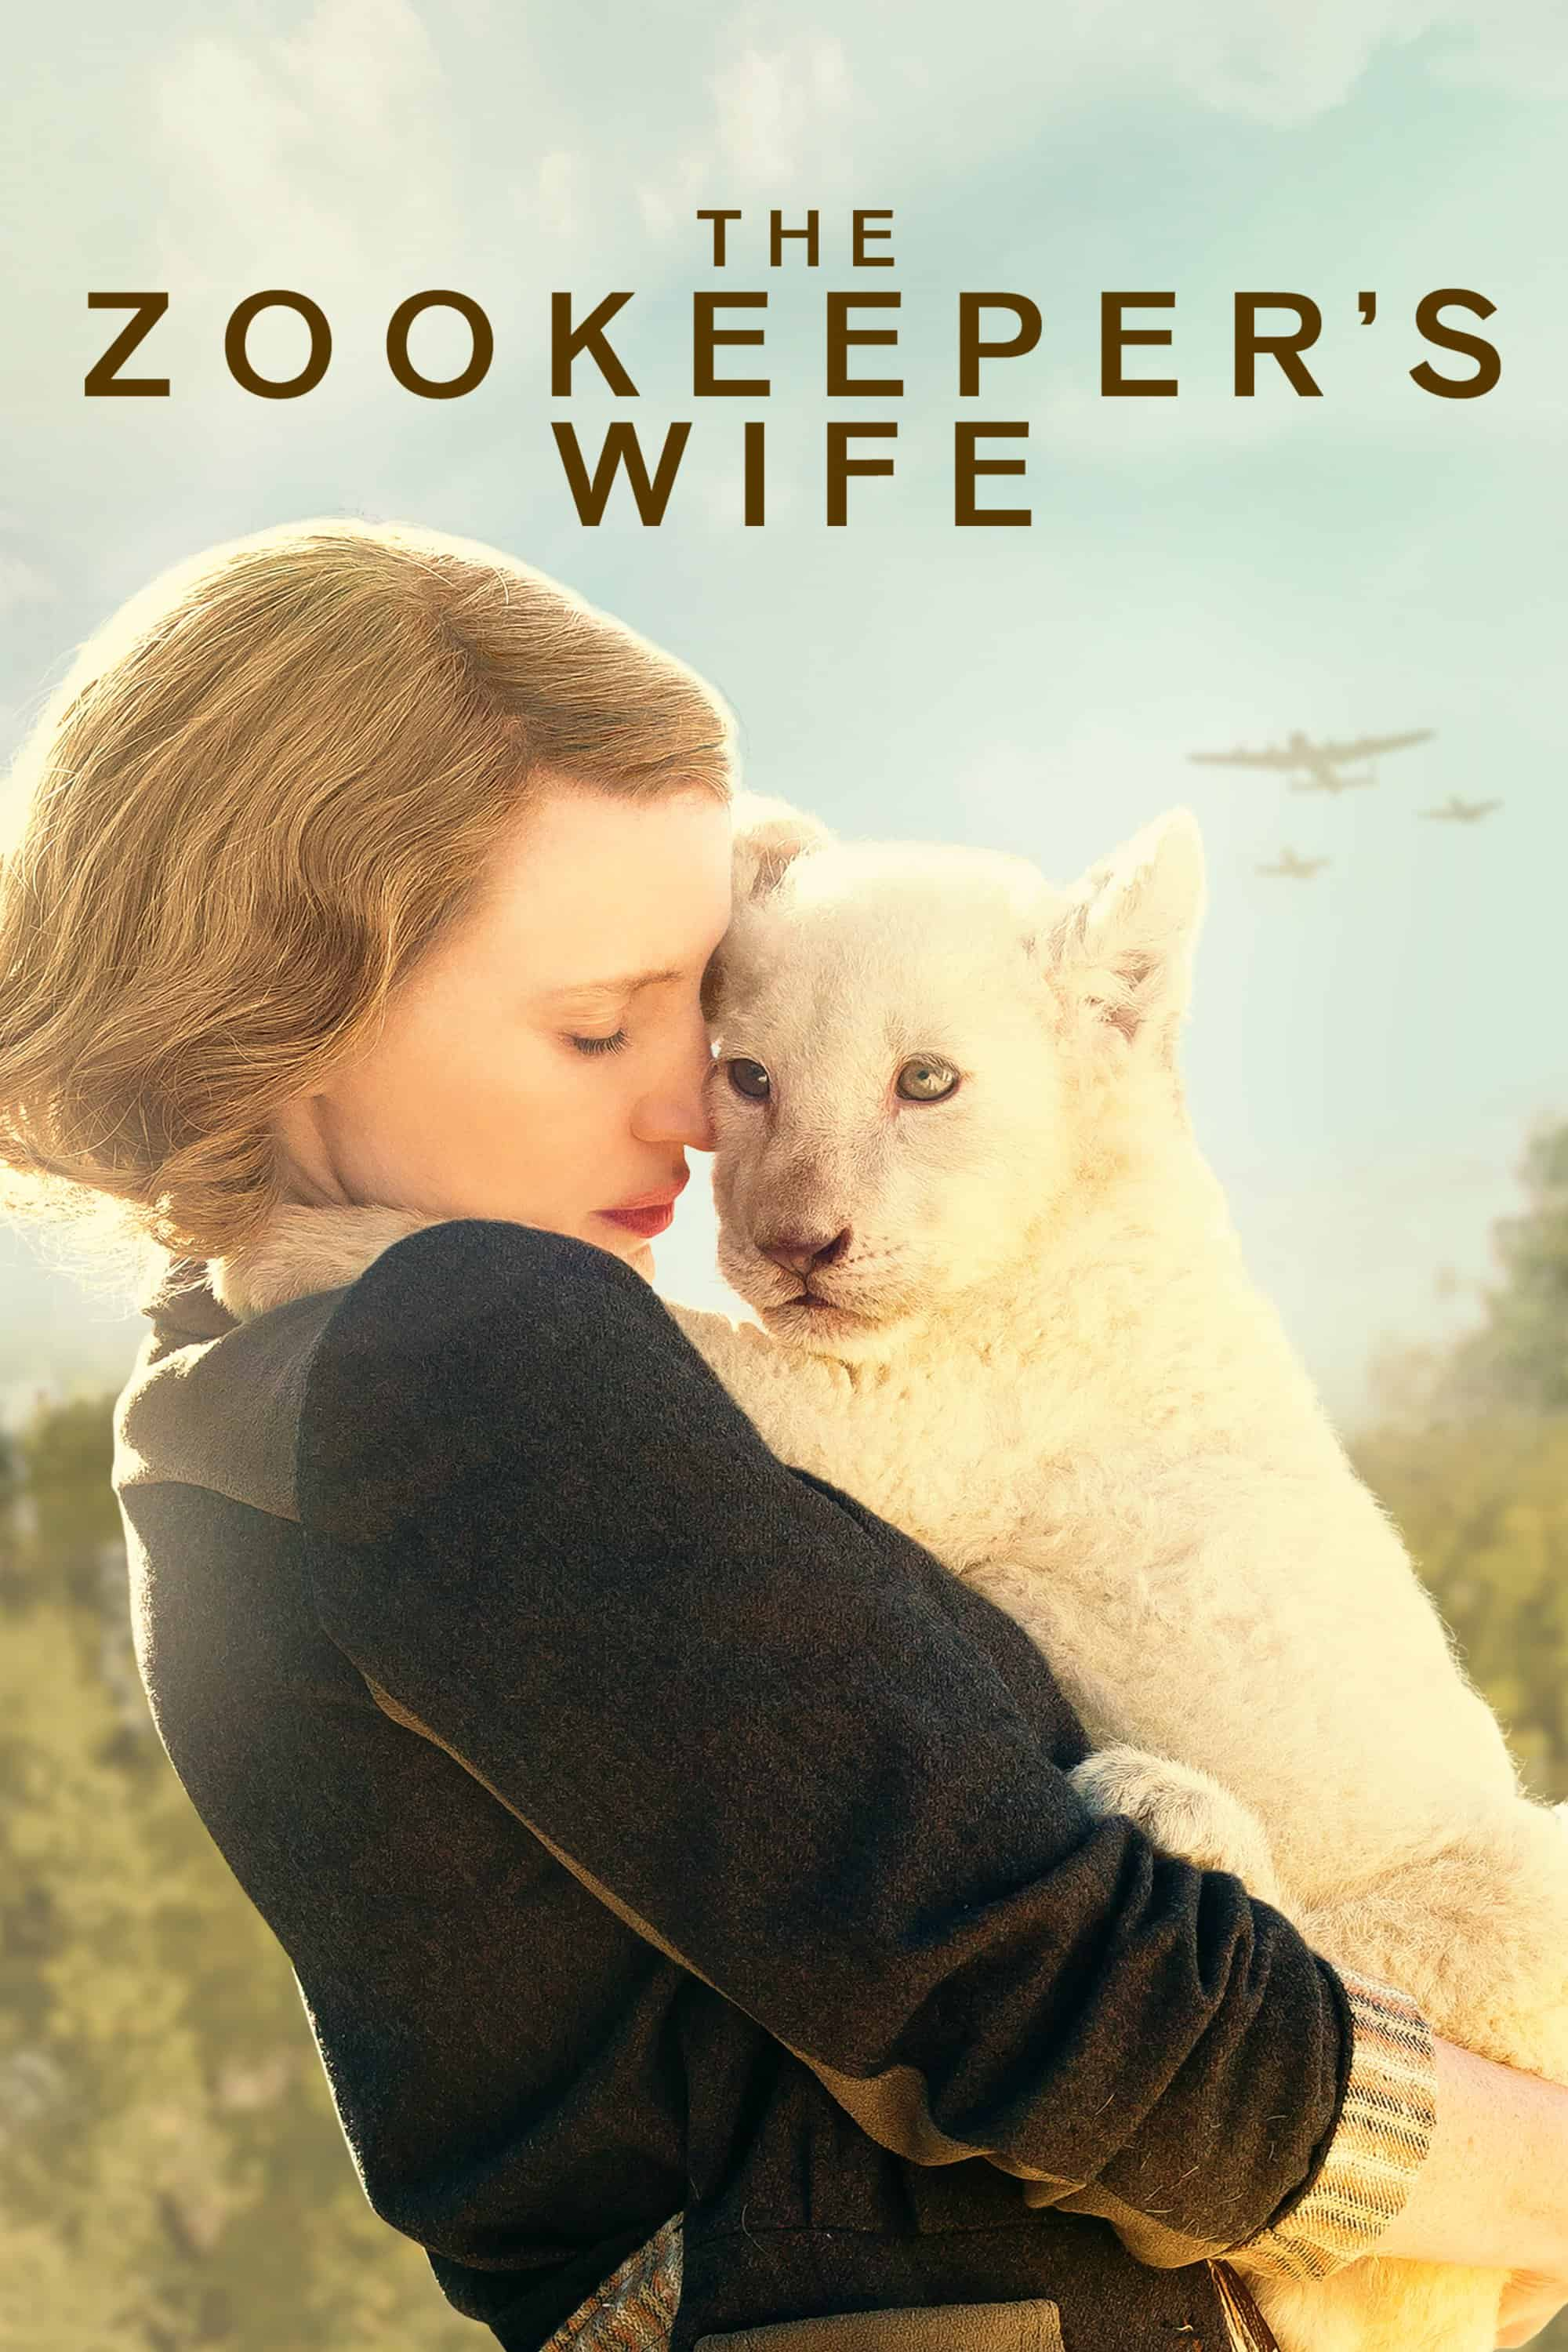 The Zookeeper's Wife, 2017